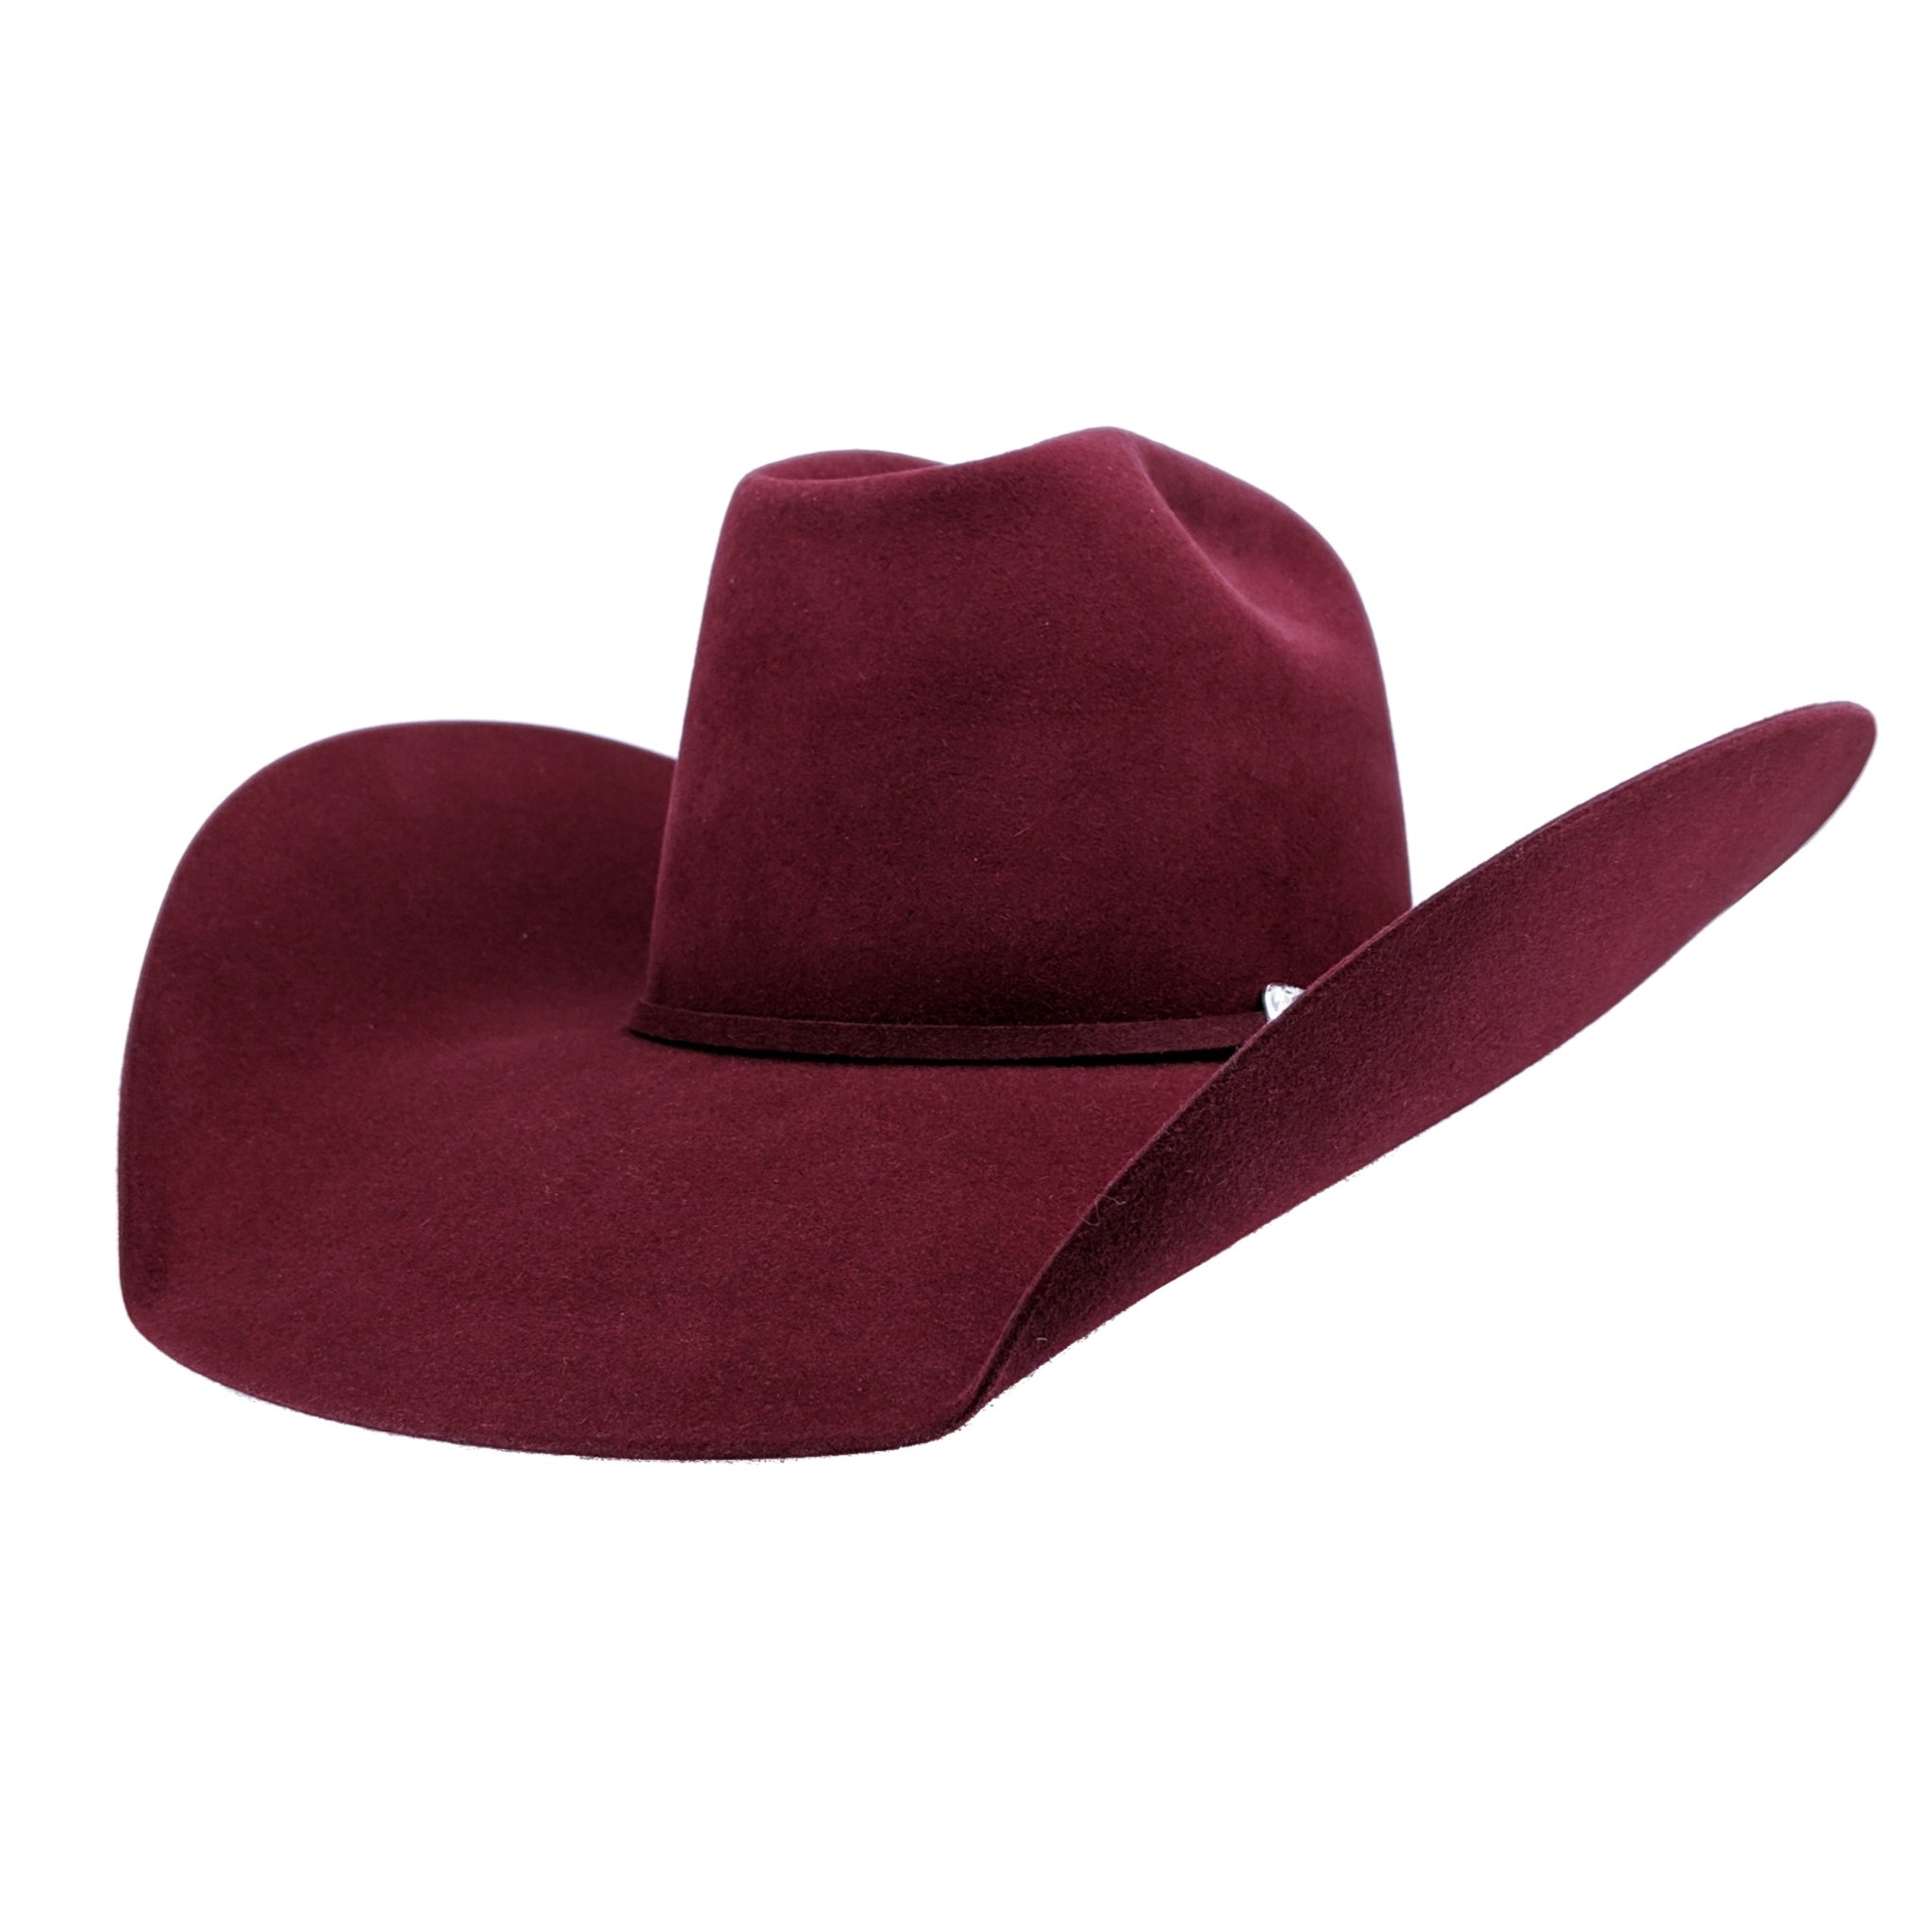 "Atwood Hat Company ""Red Wine"" Felt Hat"